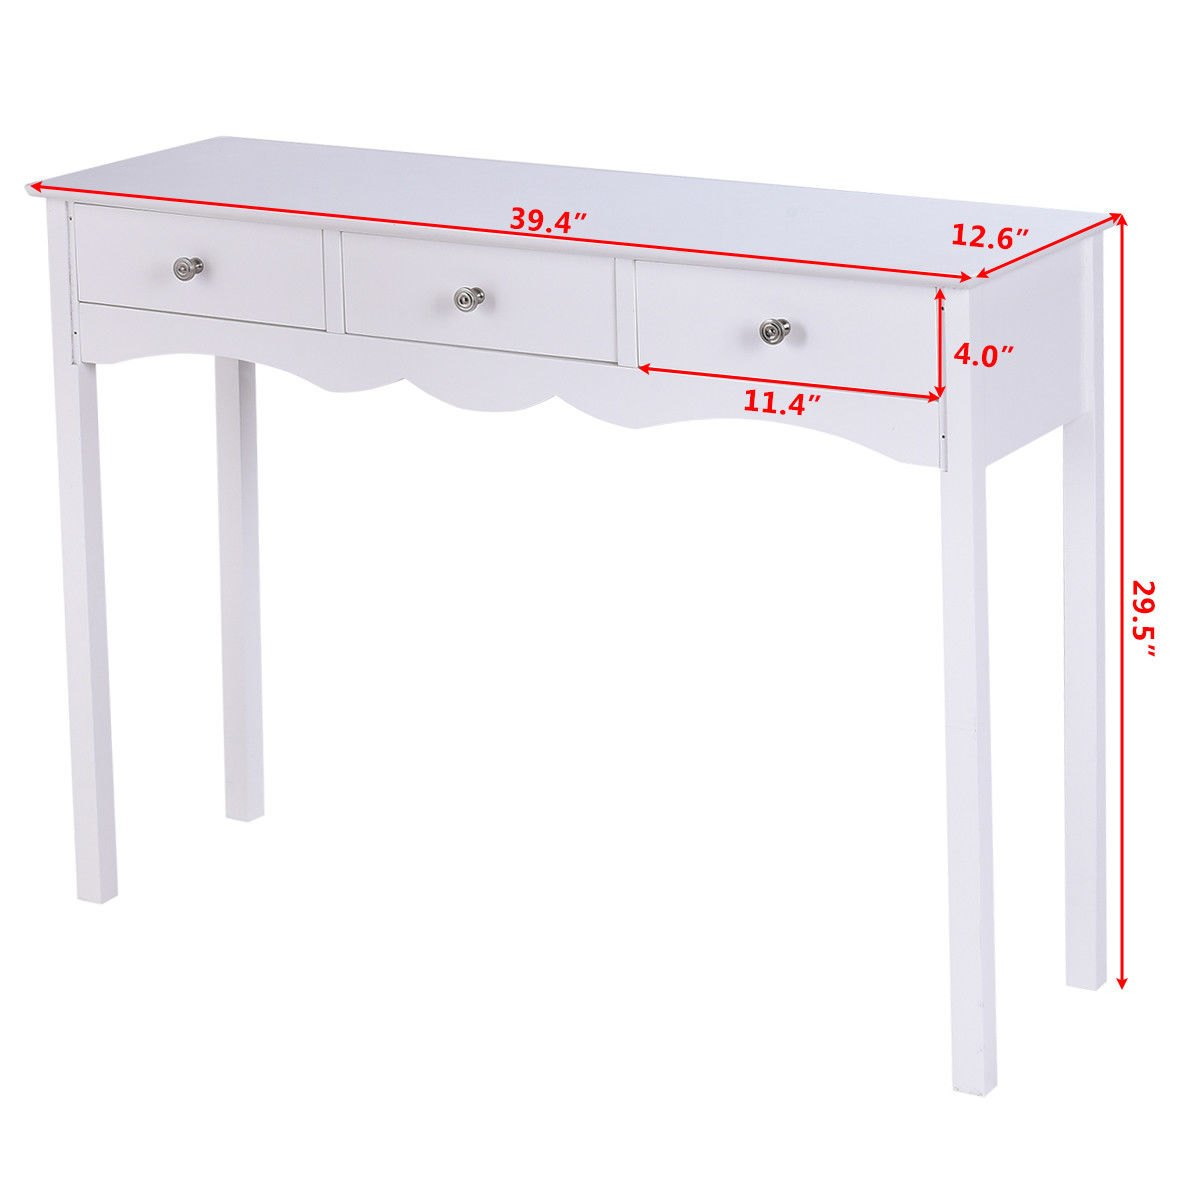 way console table hall side desk accent with drawer drawers entryway white school years ture frame glass ikea kids wall storage coastal decor lighting black gloss coffee wrought